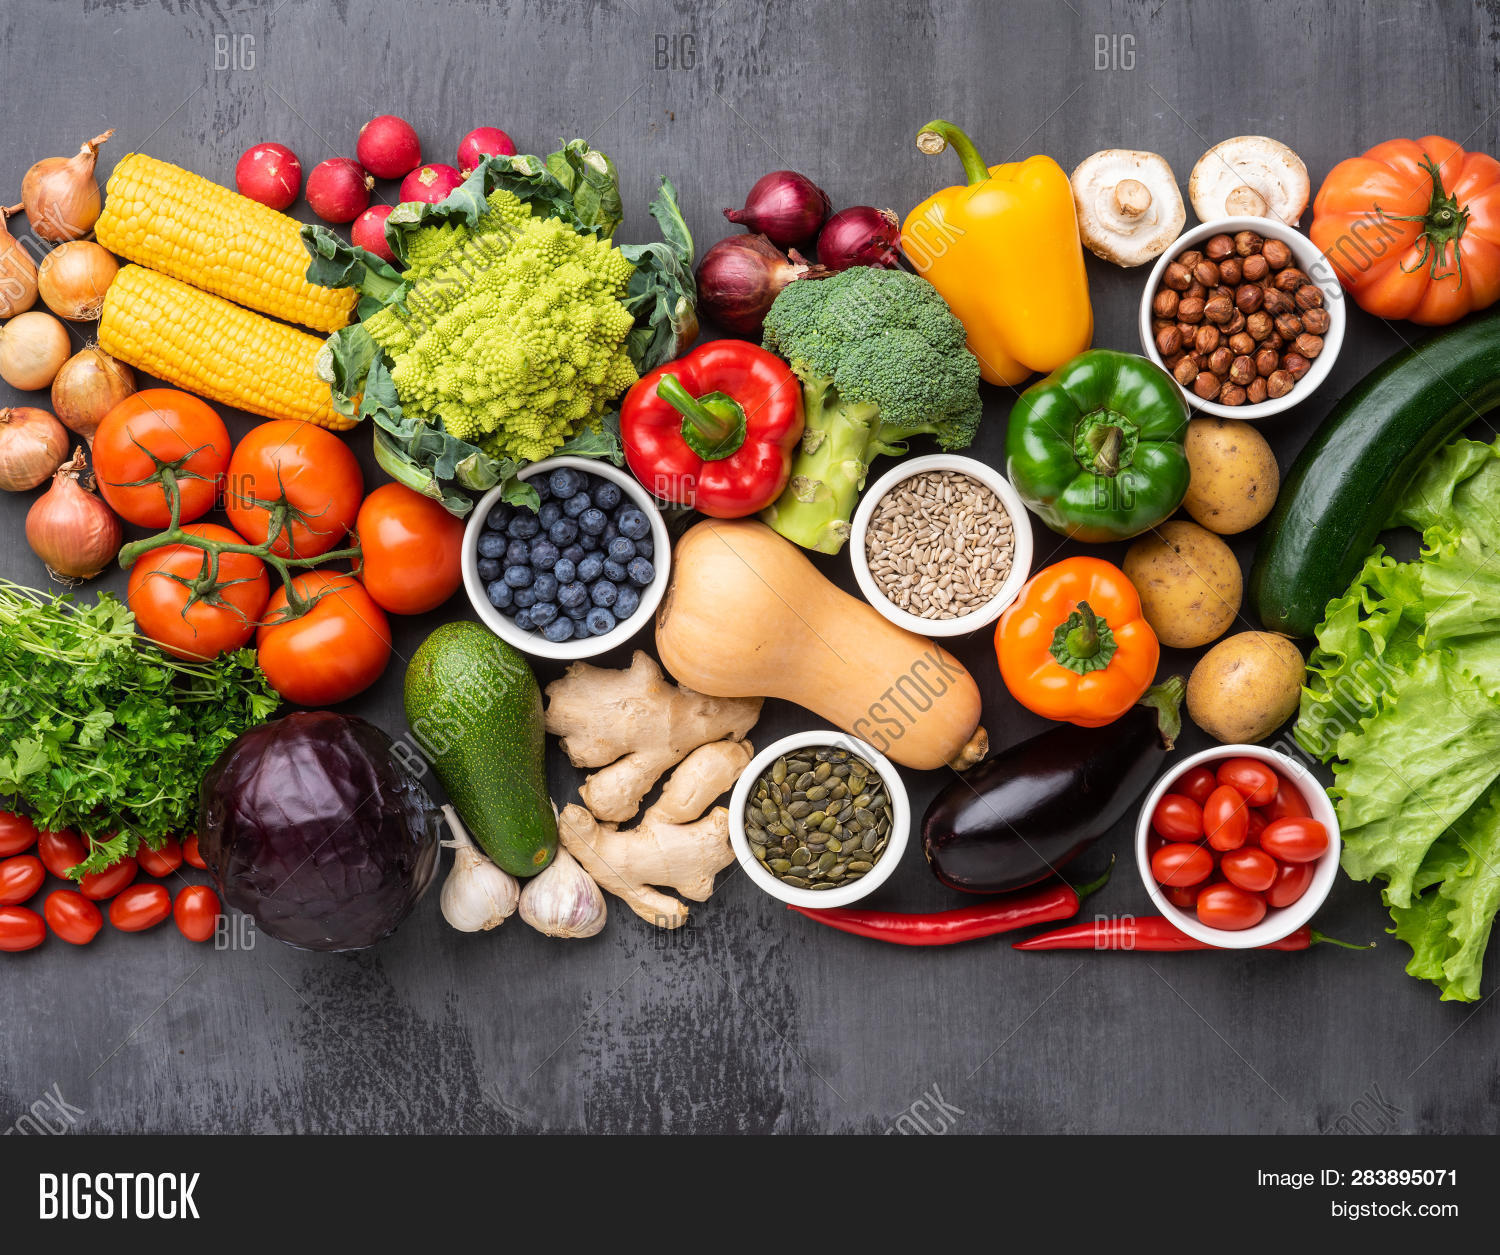 Nutrition,above,antioxidant,avocado,background,berries,bio,broccoli,cabbage,ceeds,clean,concept,concrete,cooking,corn,detox,diet,eating,eggplant,energy,food,fresh,fruit,ginger,harvest,health,healthcare,healthy,ingredients,leaf,lettuce,mushrooms,nuts,organic,pepper,potatoe,product,pumpkin,raw,superfood,tomato,vegan,vegetables,vegetarian,veggie,vegs,vitamins,zucchini